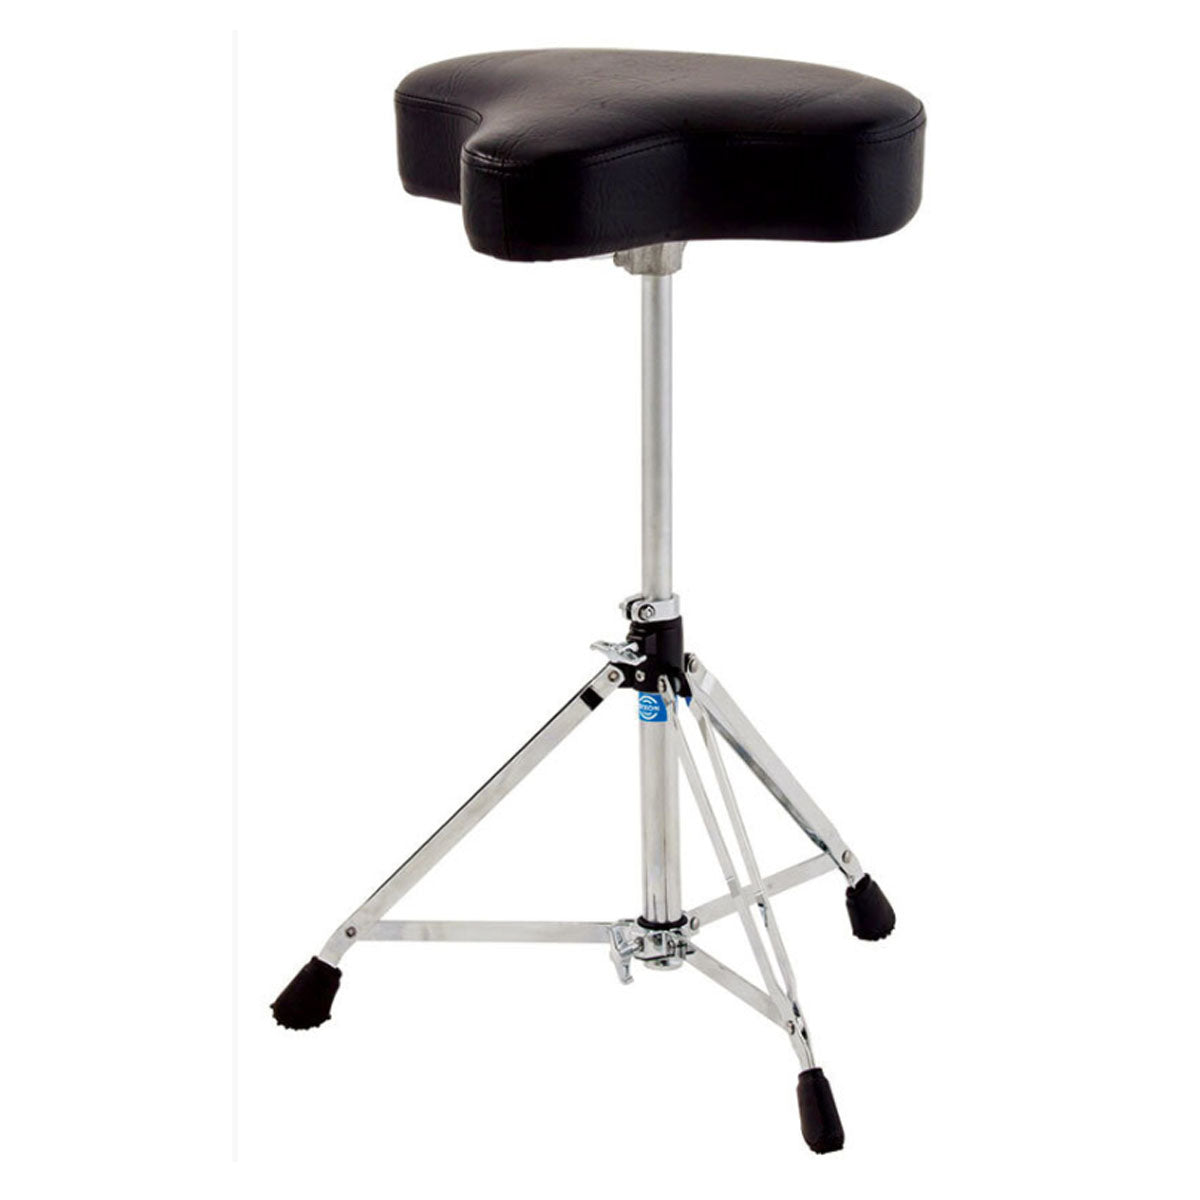 Dixon Drum Throne Stool Motorcycle Light-Weight Double Braced - PSN9100MHN